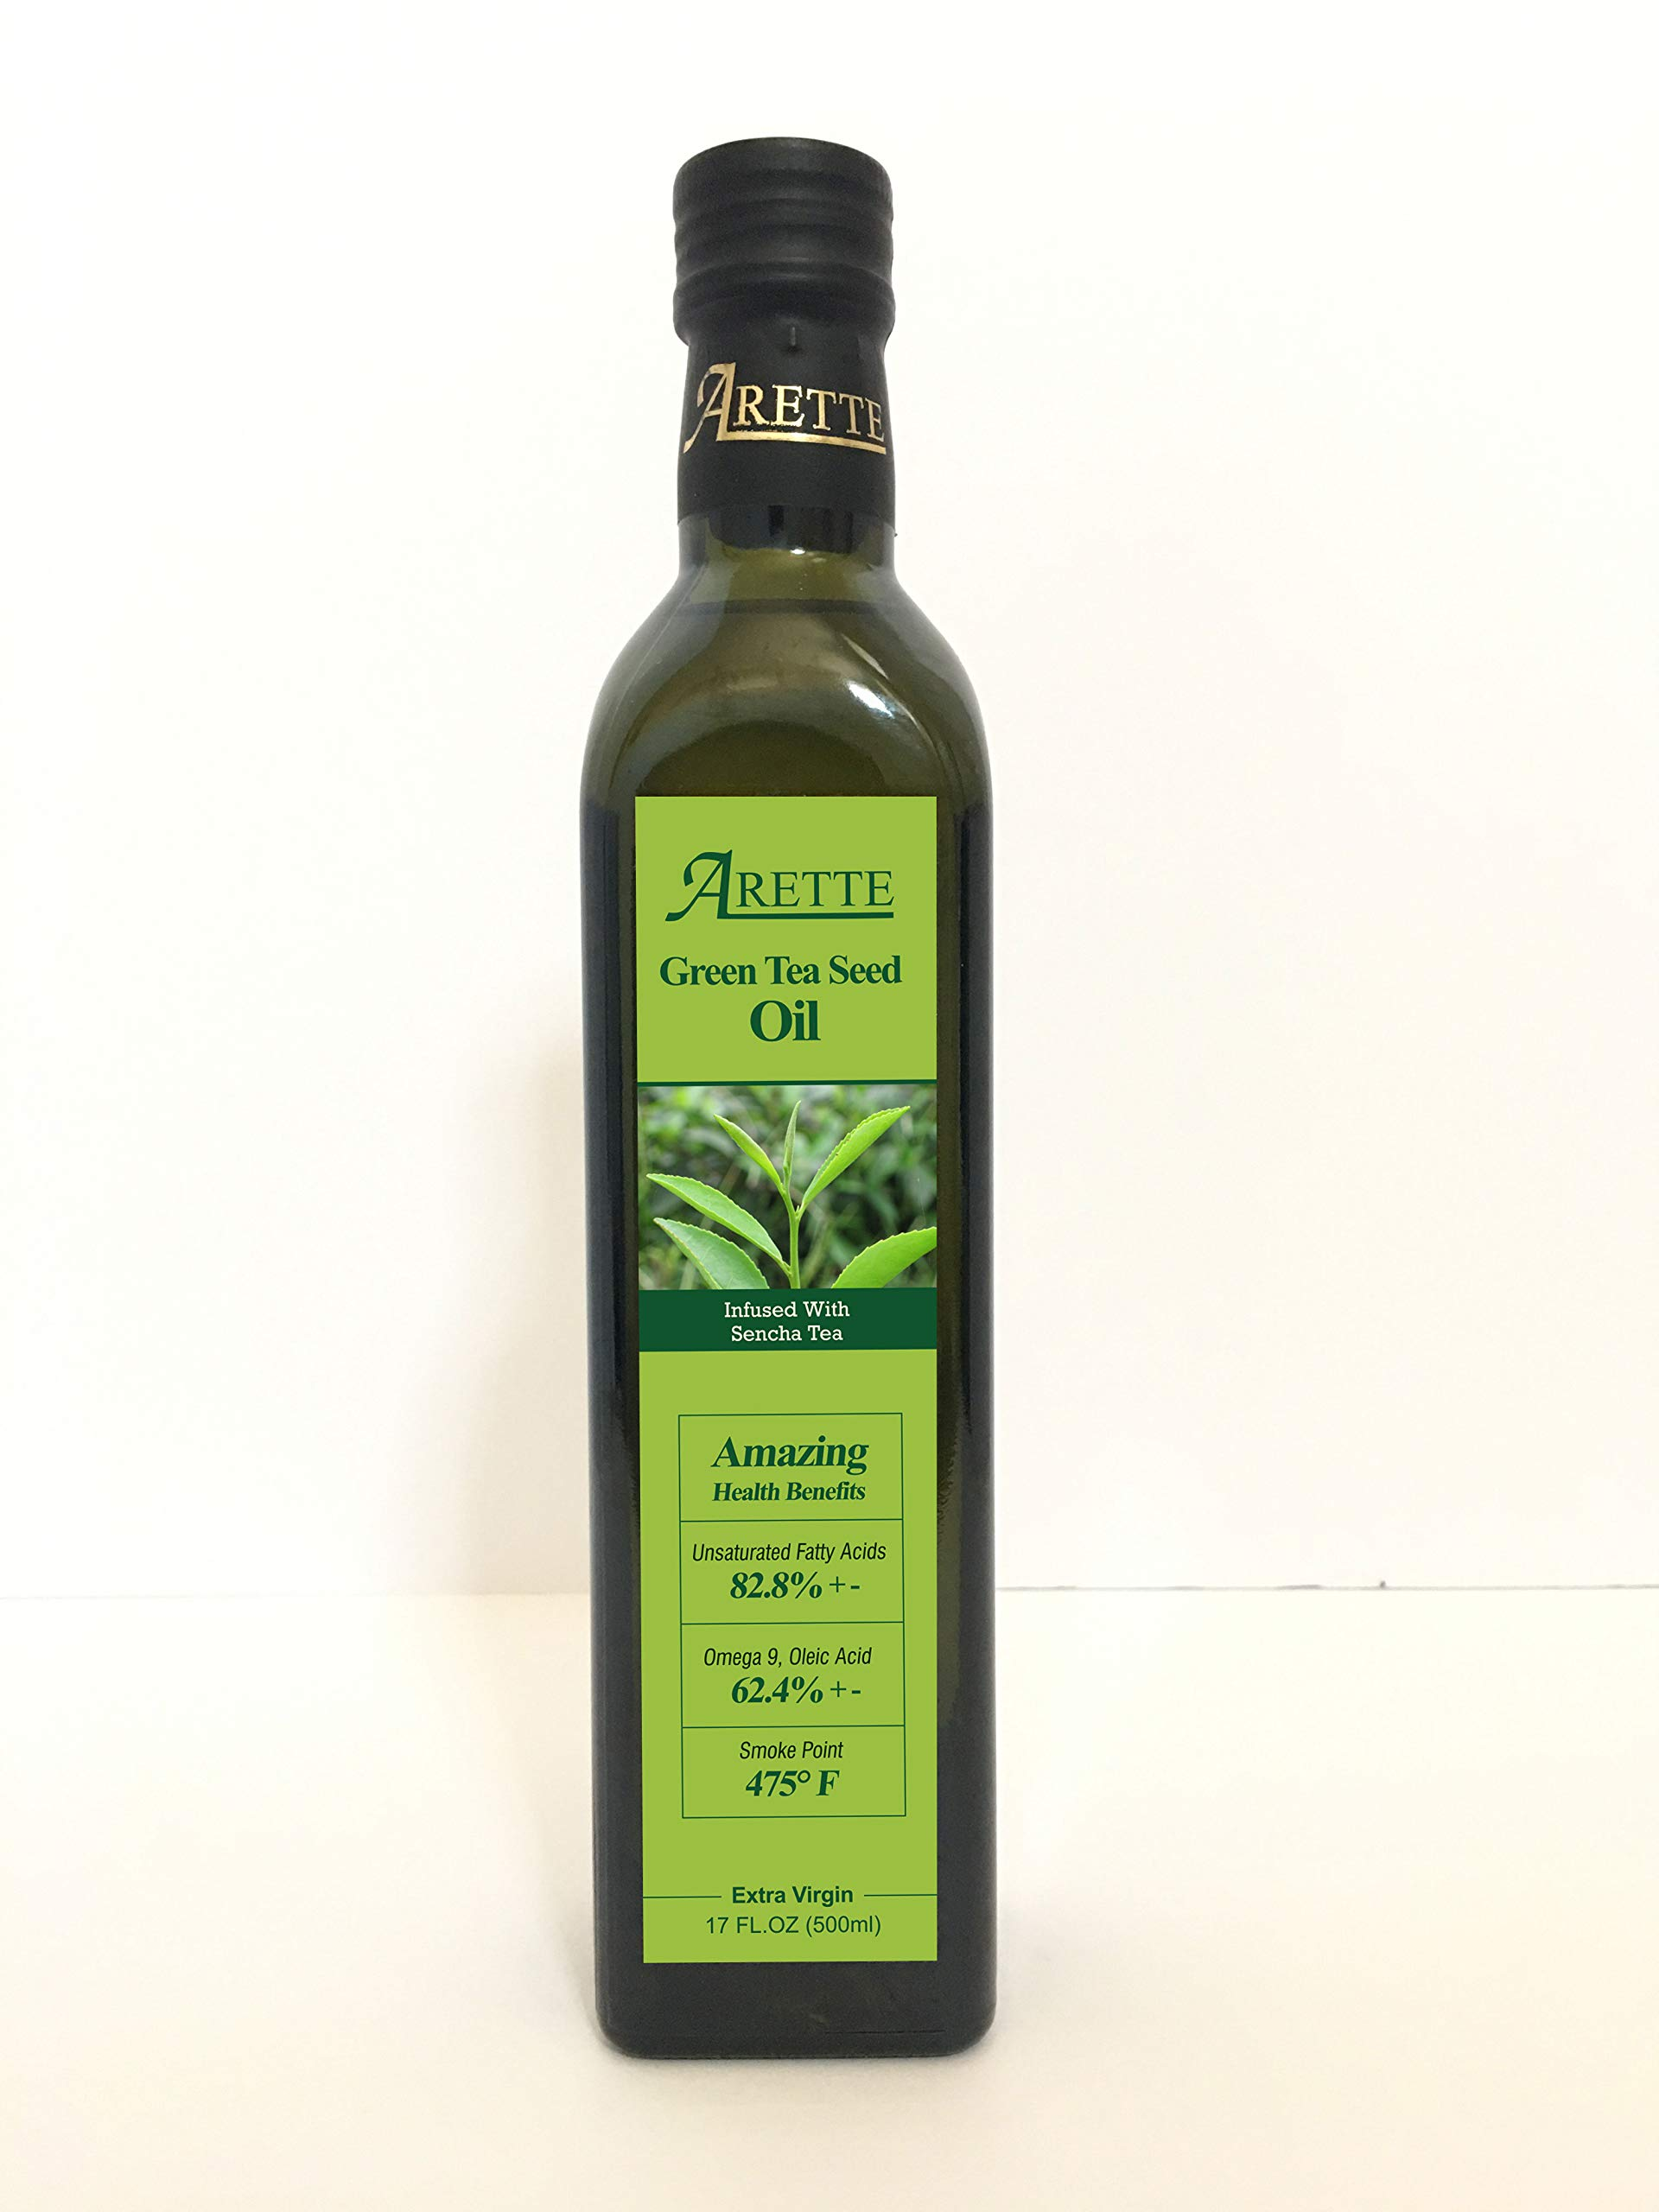 Arette Green Tea Seed Oil with Steamed Green Tea-500ml bottle